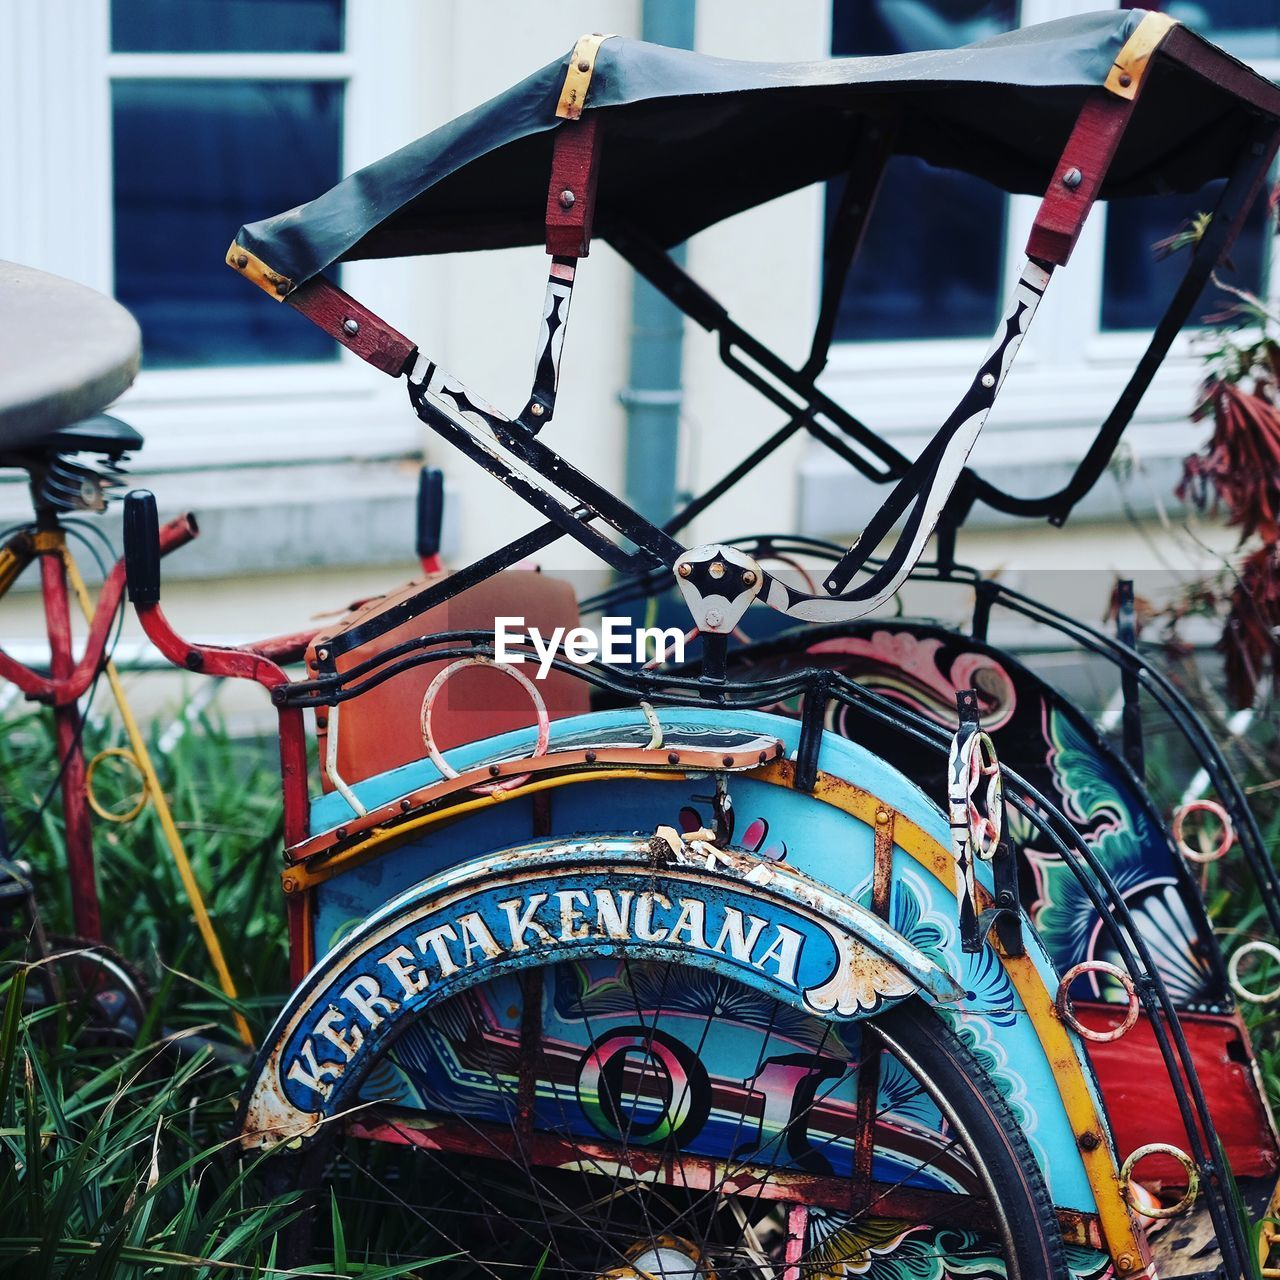 transportation, mode of transportation, day, no people, focus on foreground, close-up, multi colored, outdoors, land vehicle, communication, metal, nature, nautical vessel, design, number, bicycle, shape, seat, text, architecture, wheel